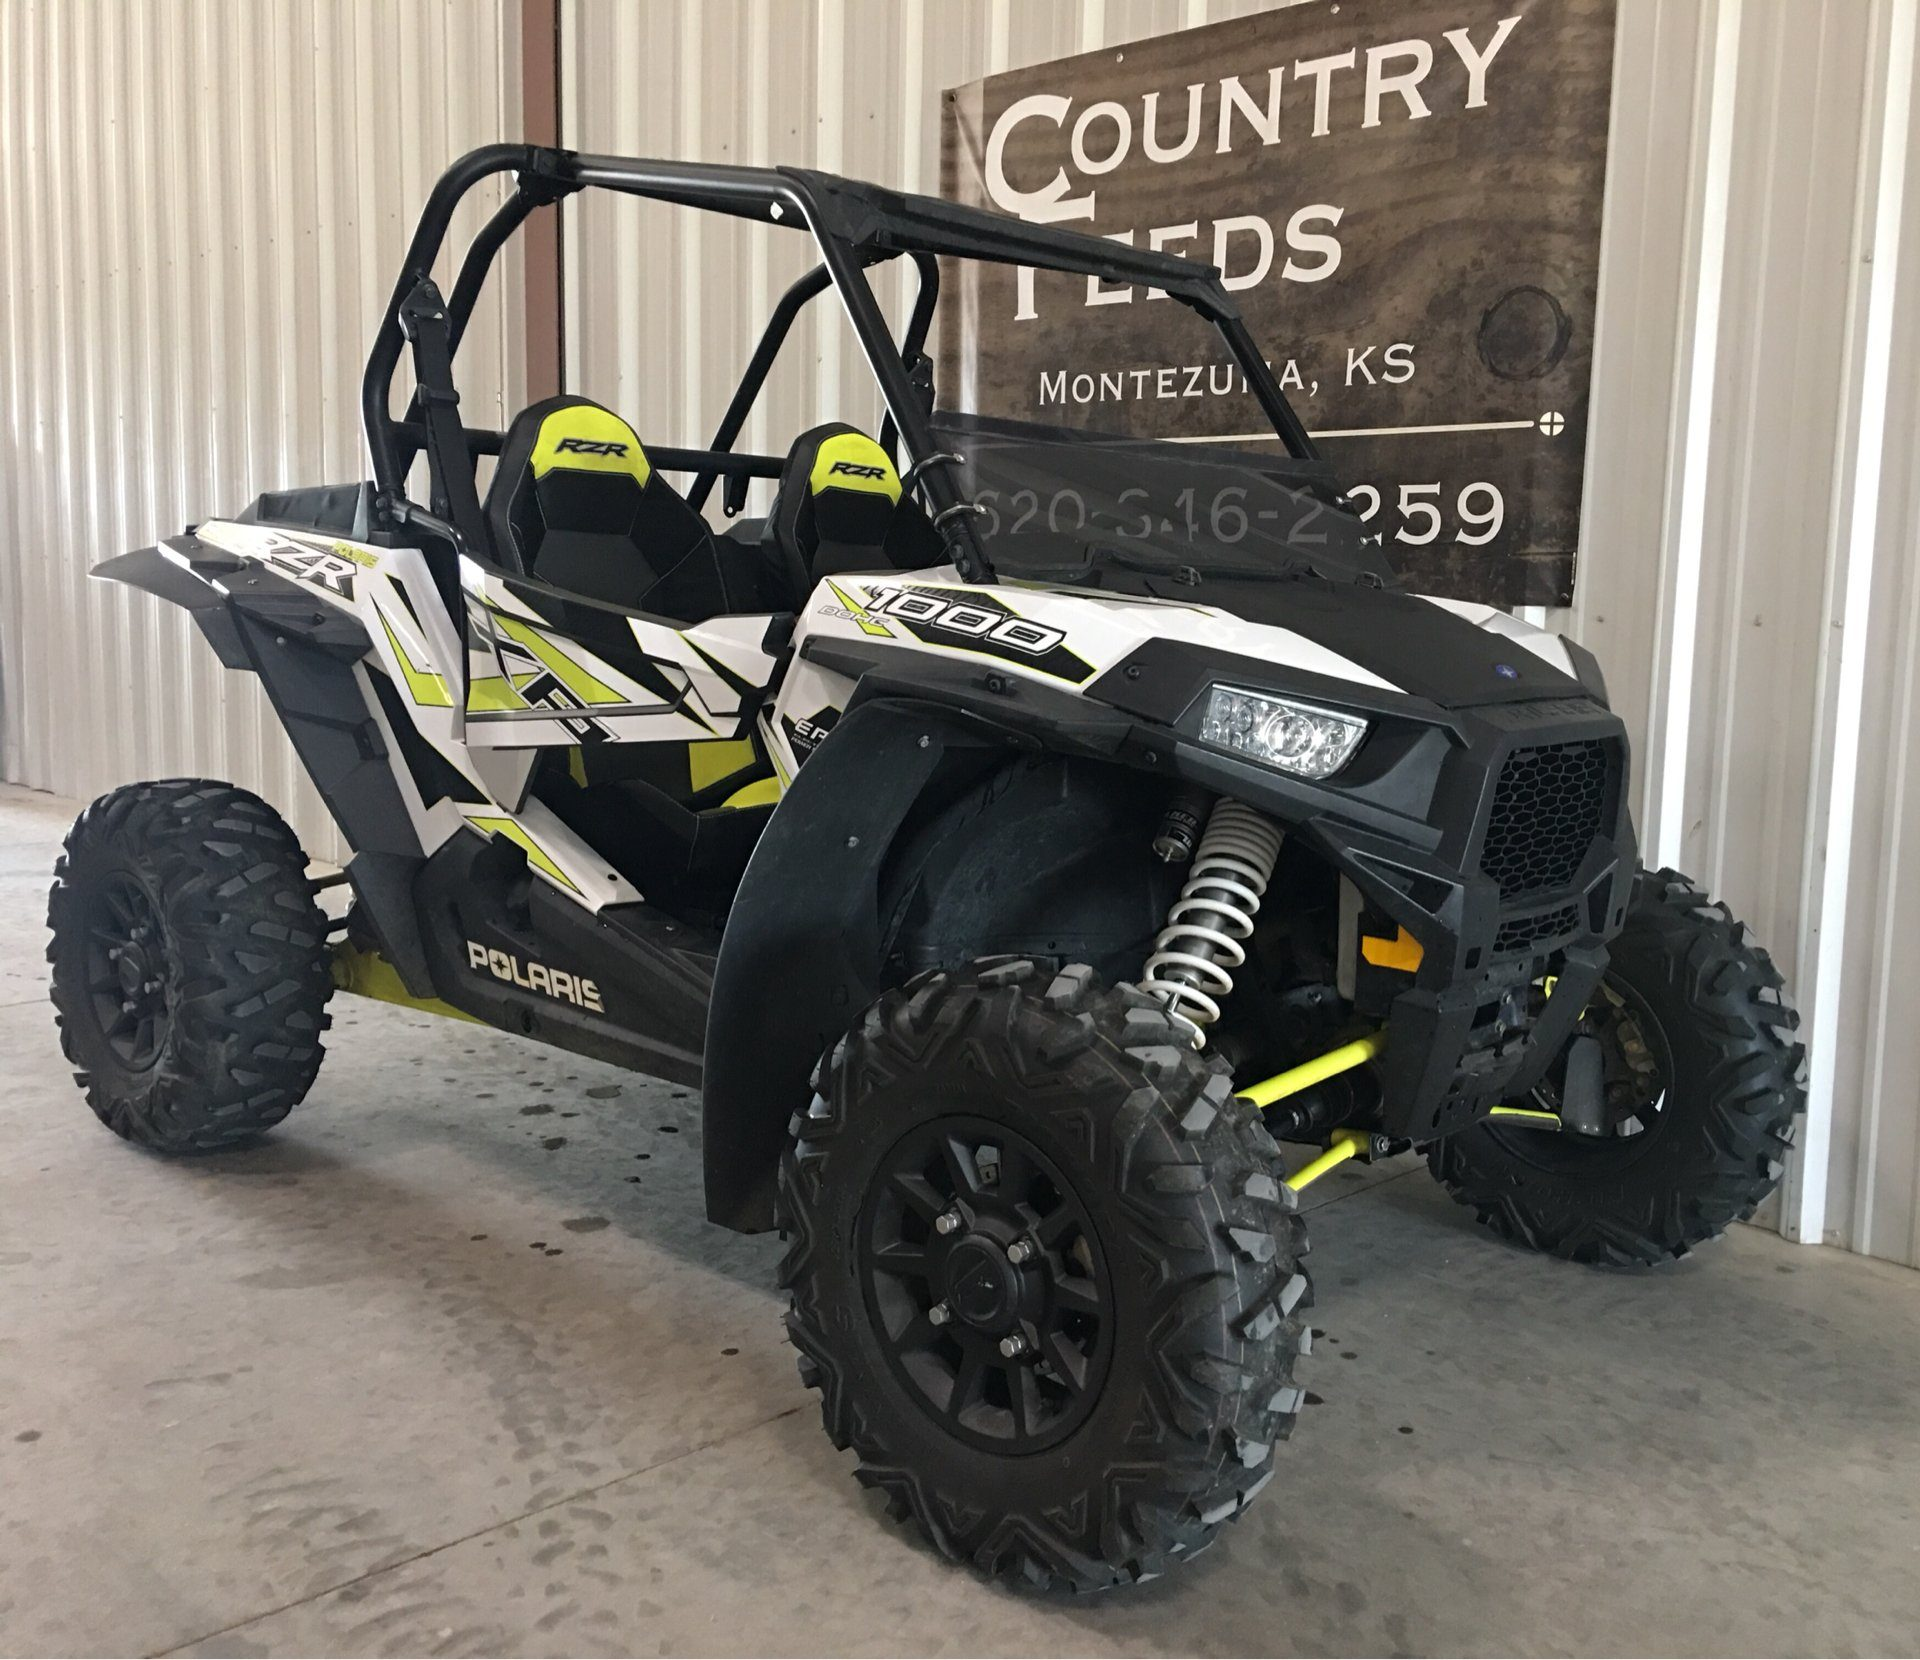 2018 Polaris RZR XP 1000 EPS in Montezuma, Kansas - Photo 17